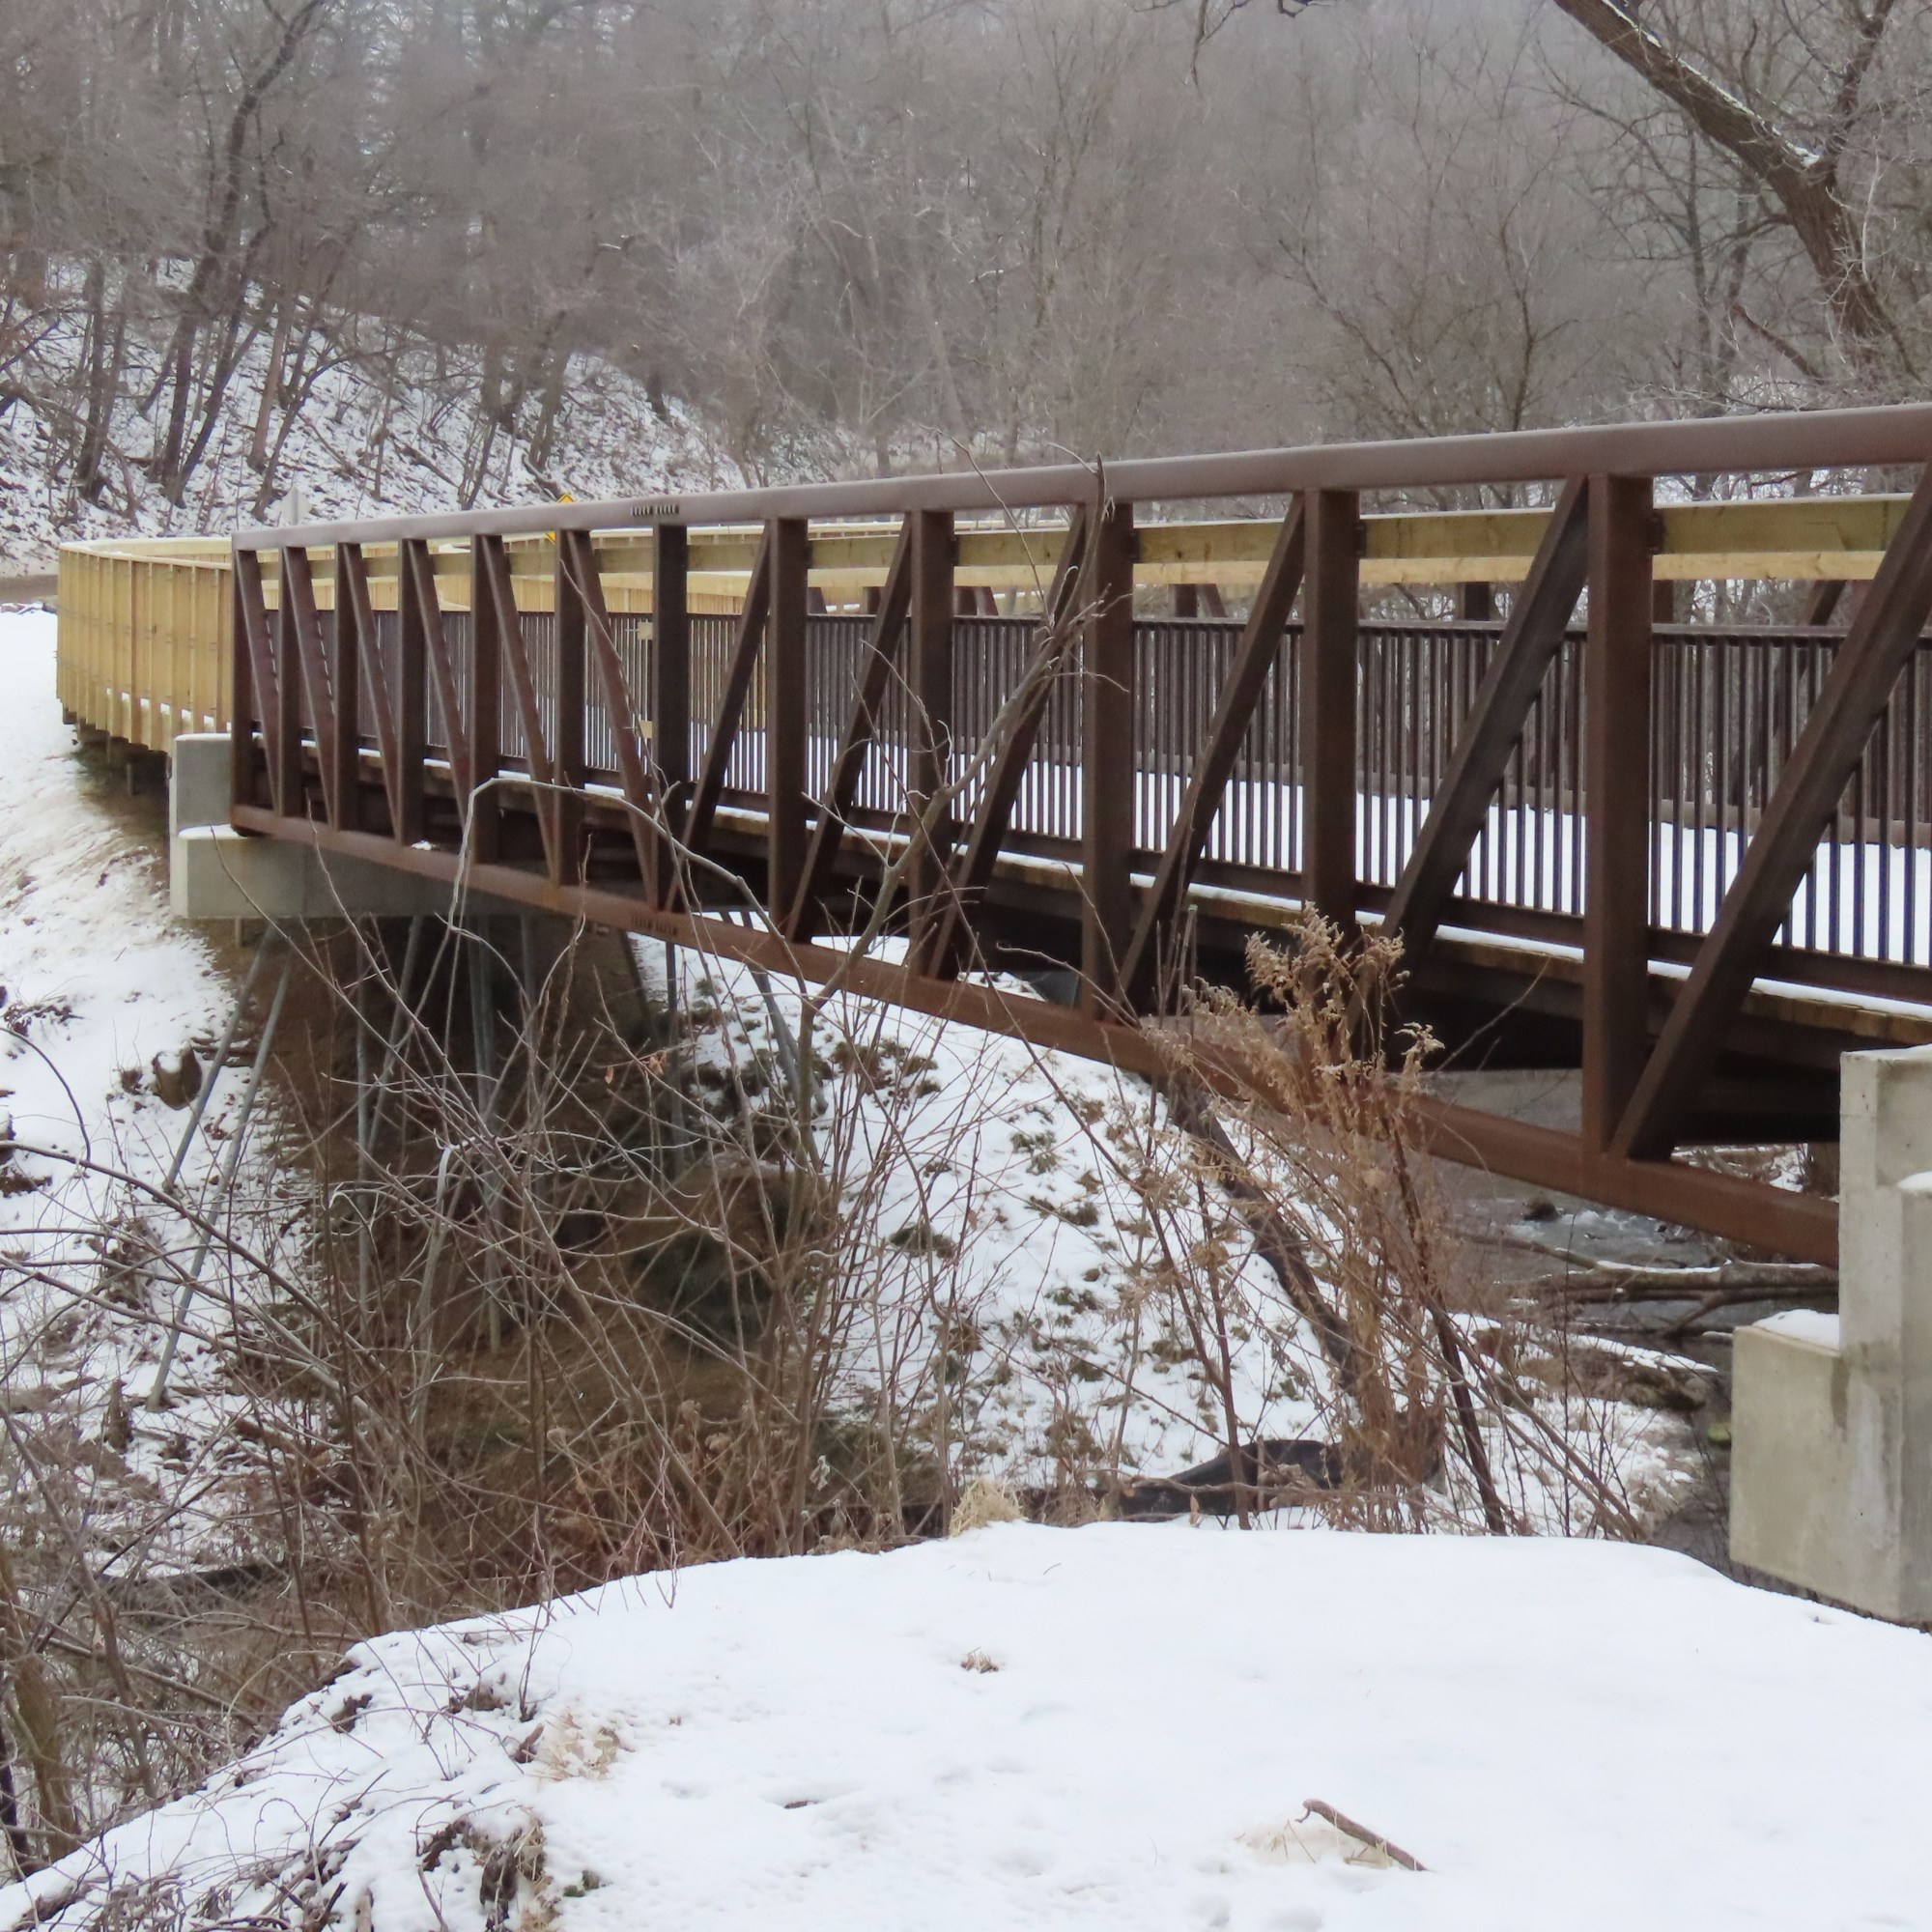 Steel bridge over a wide creek